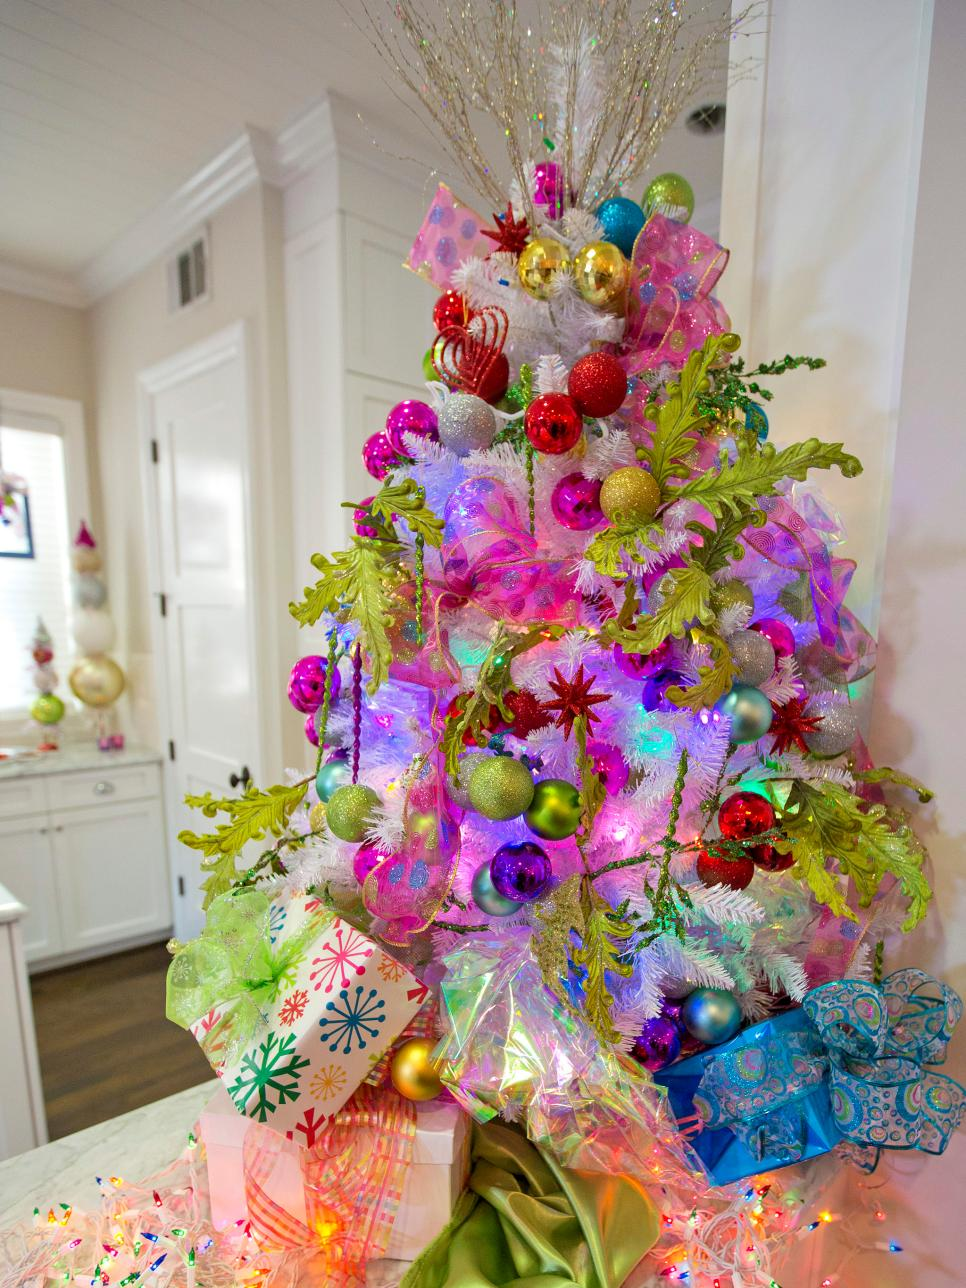 For the playful and eclectic Fashionista, this tree is the only option Leaves, ornaments, holographic paper and actual presents fill this tree on wonder.